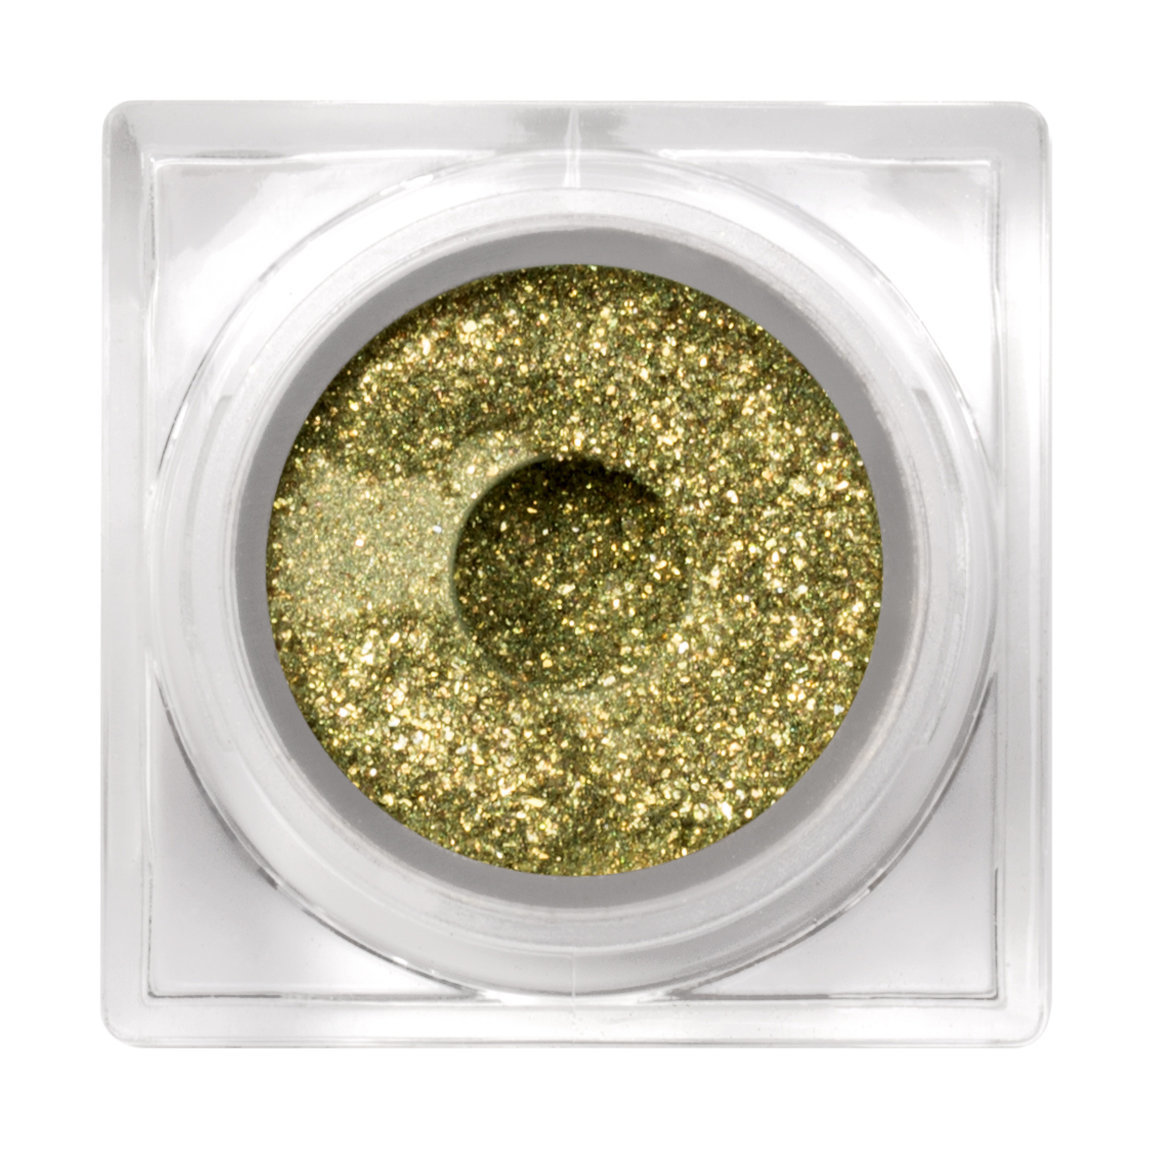 Lit Cosmetics Lit Metals Enchanted (Gold) alternative view 1 - product swatch.